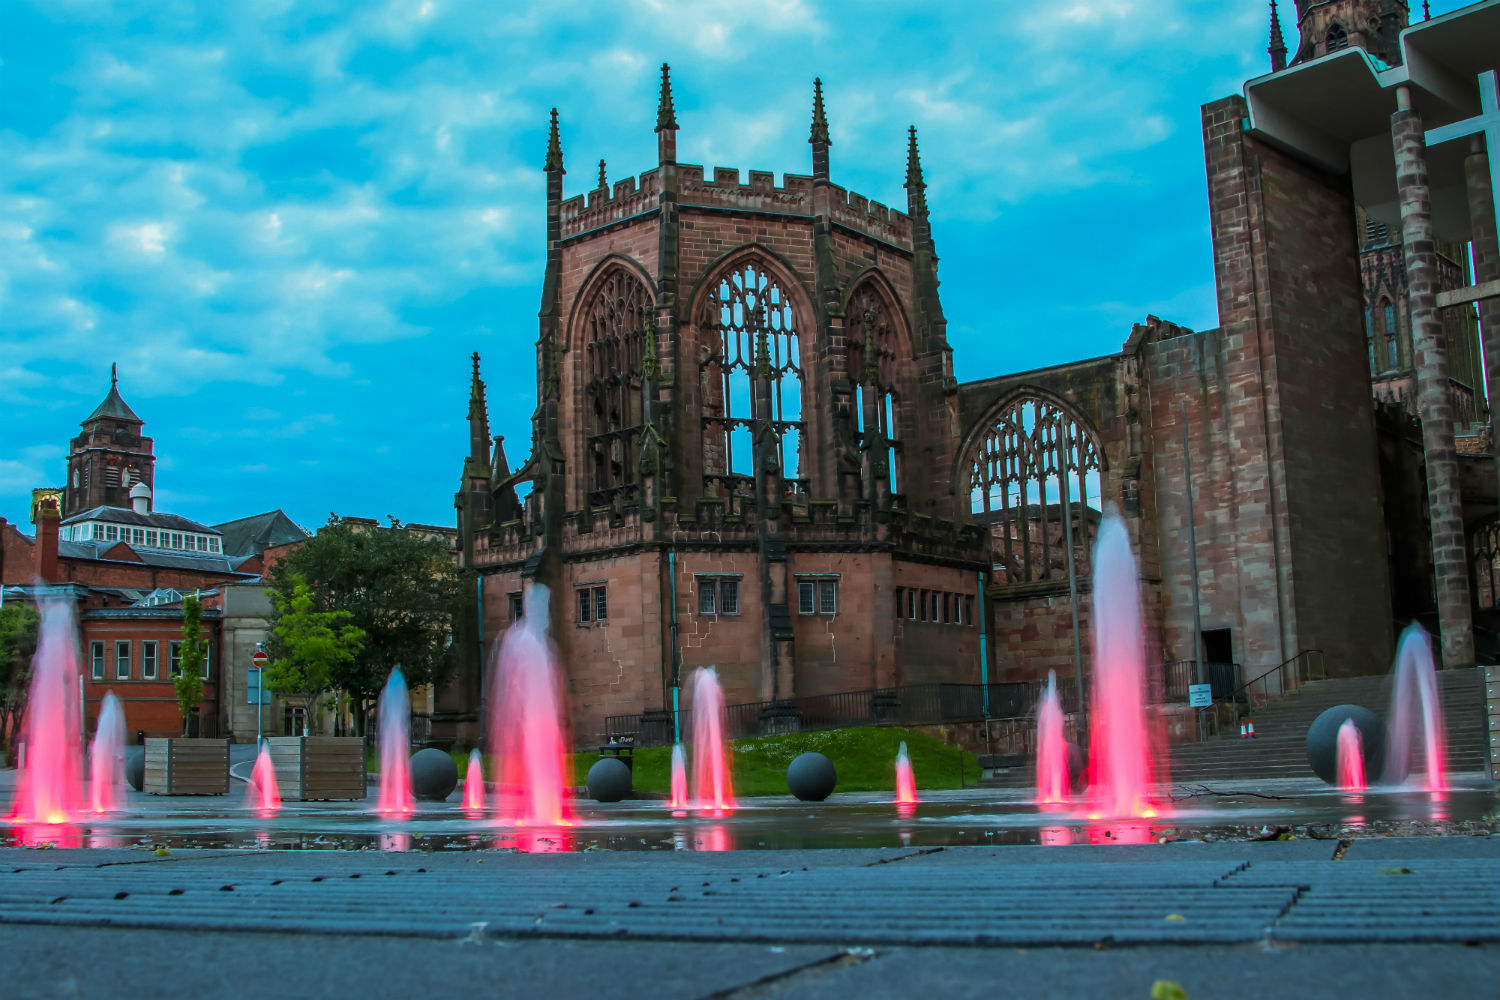 Photo of Coventry at night